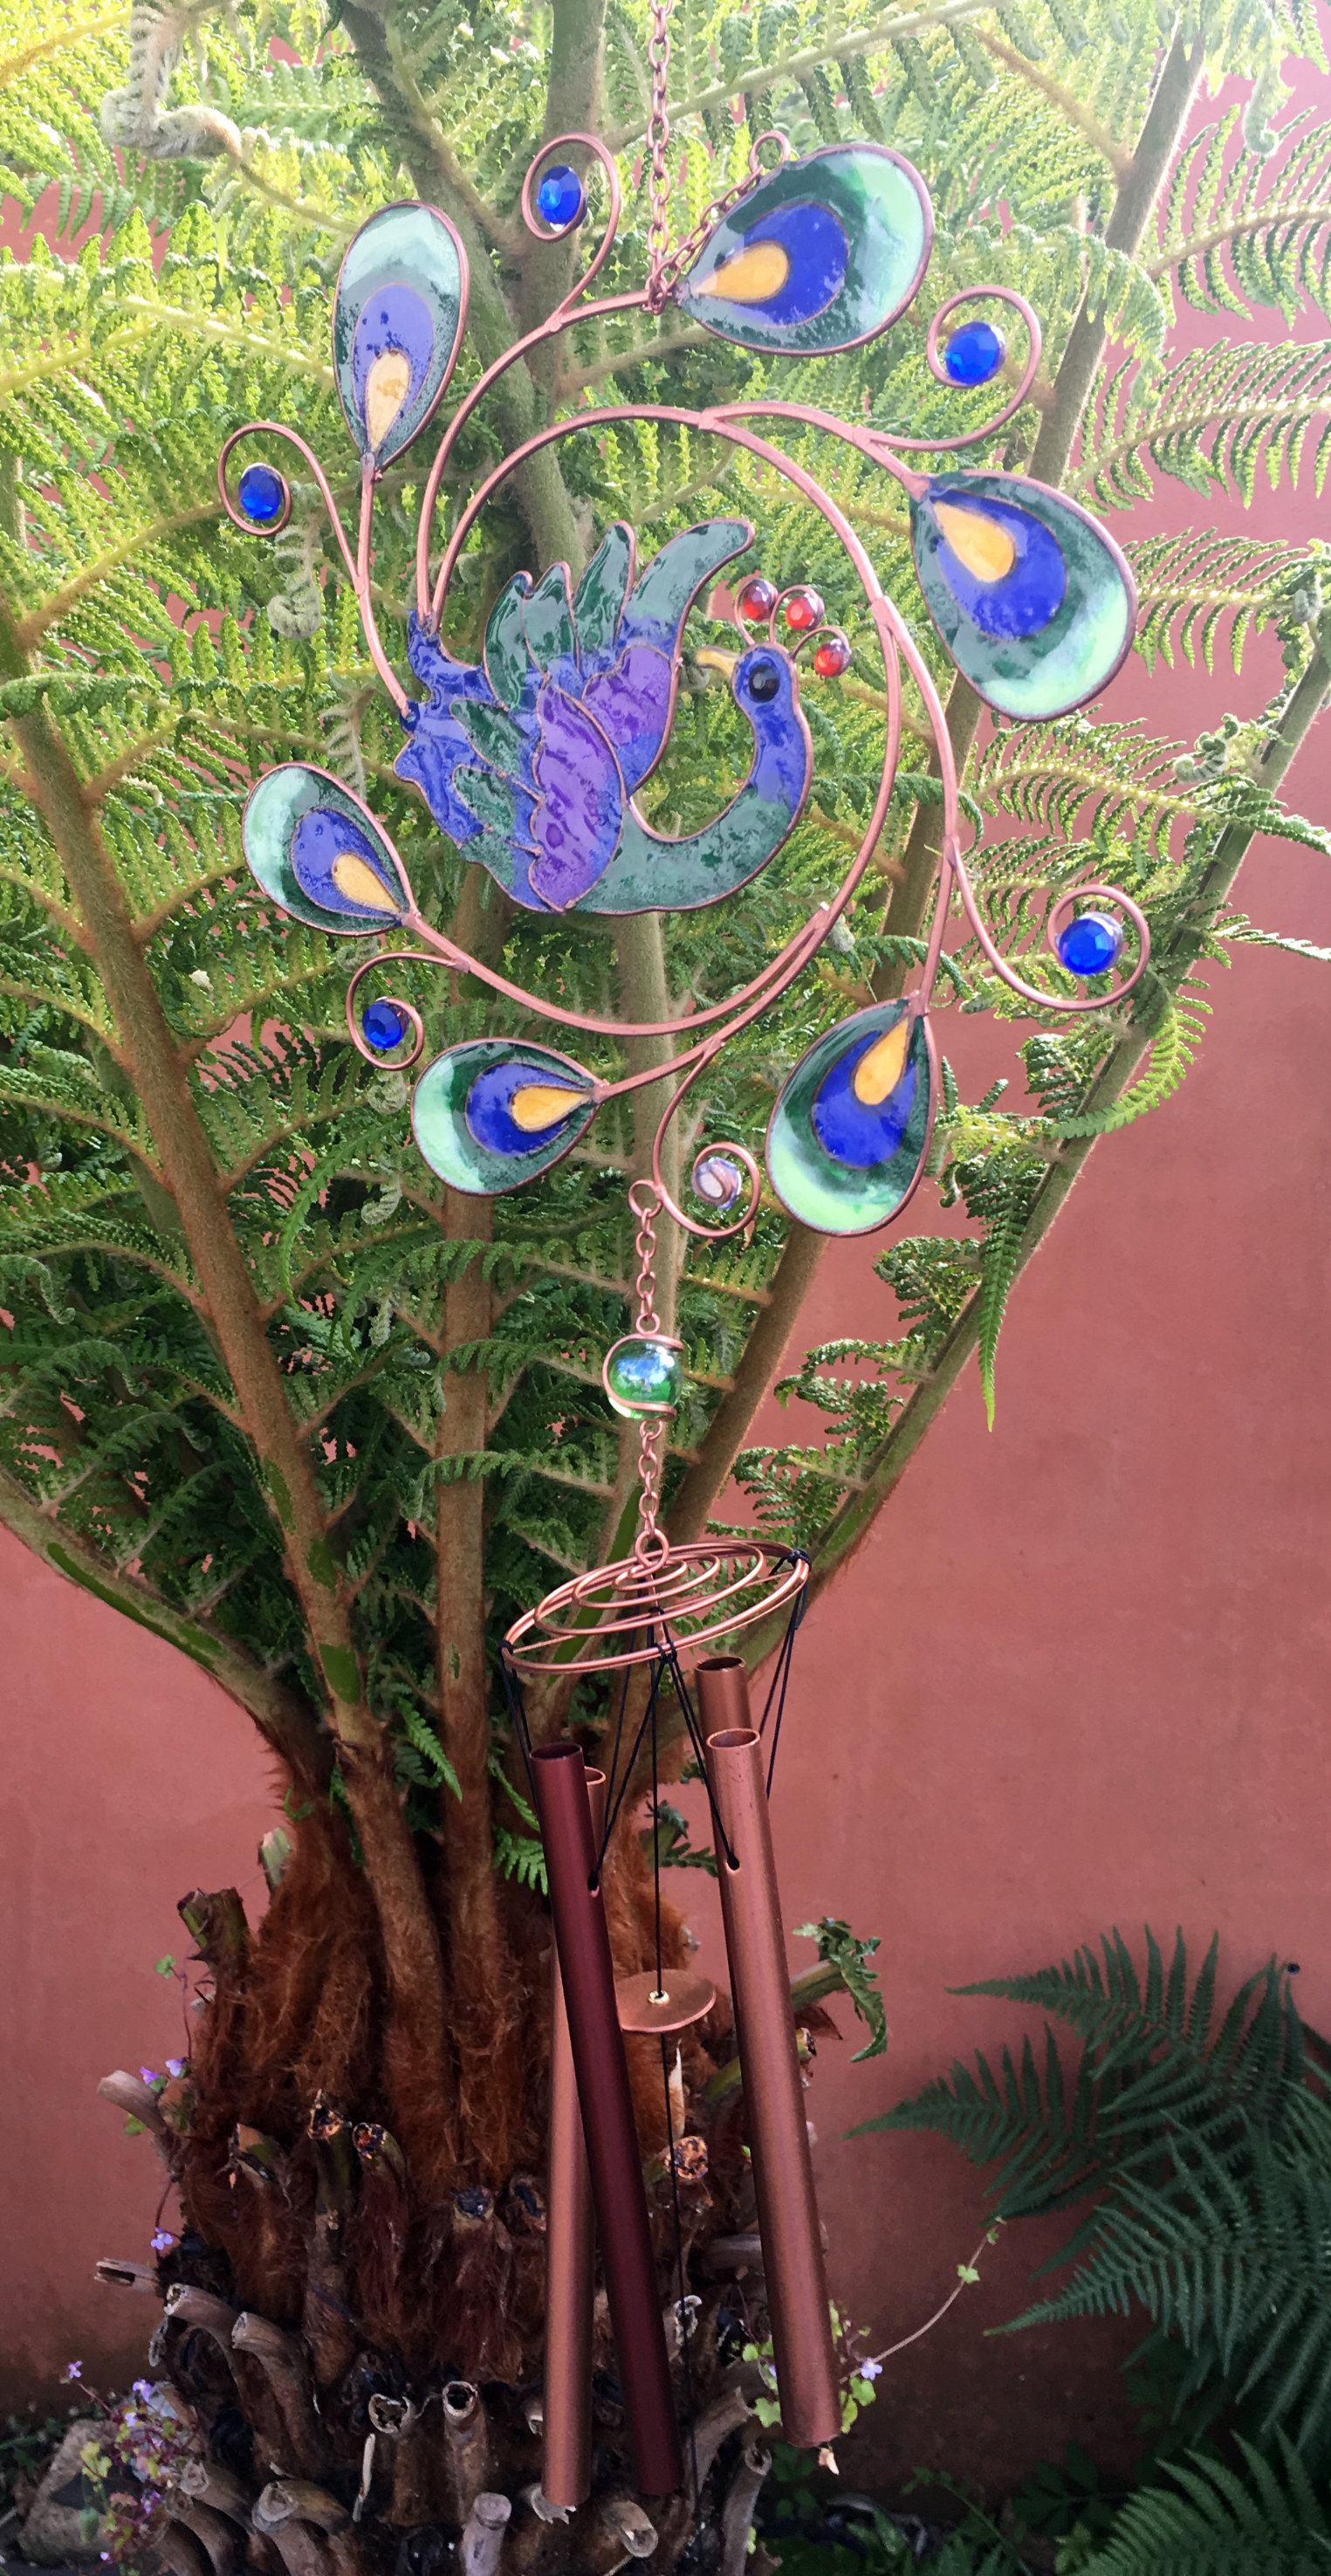 Large-Metal-amp-Glass-Hanging-Sun-Catcher-Wind-Chime-Home-Garden-Decorations thumbnail 47